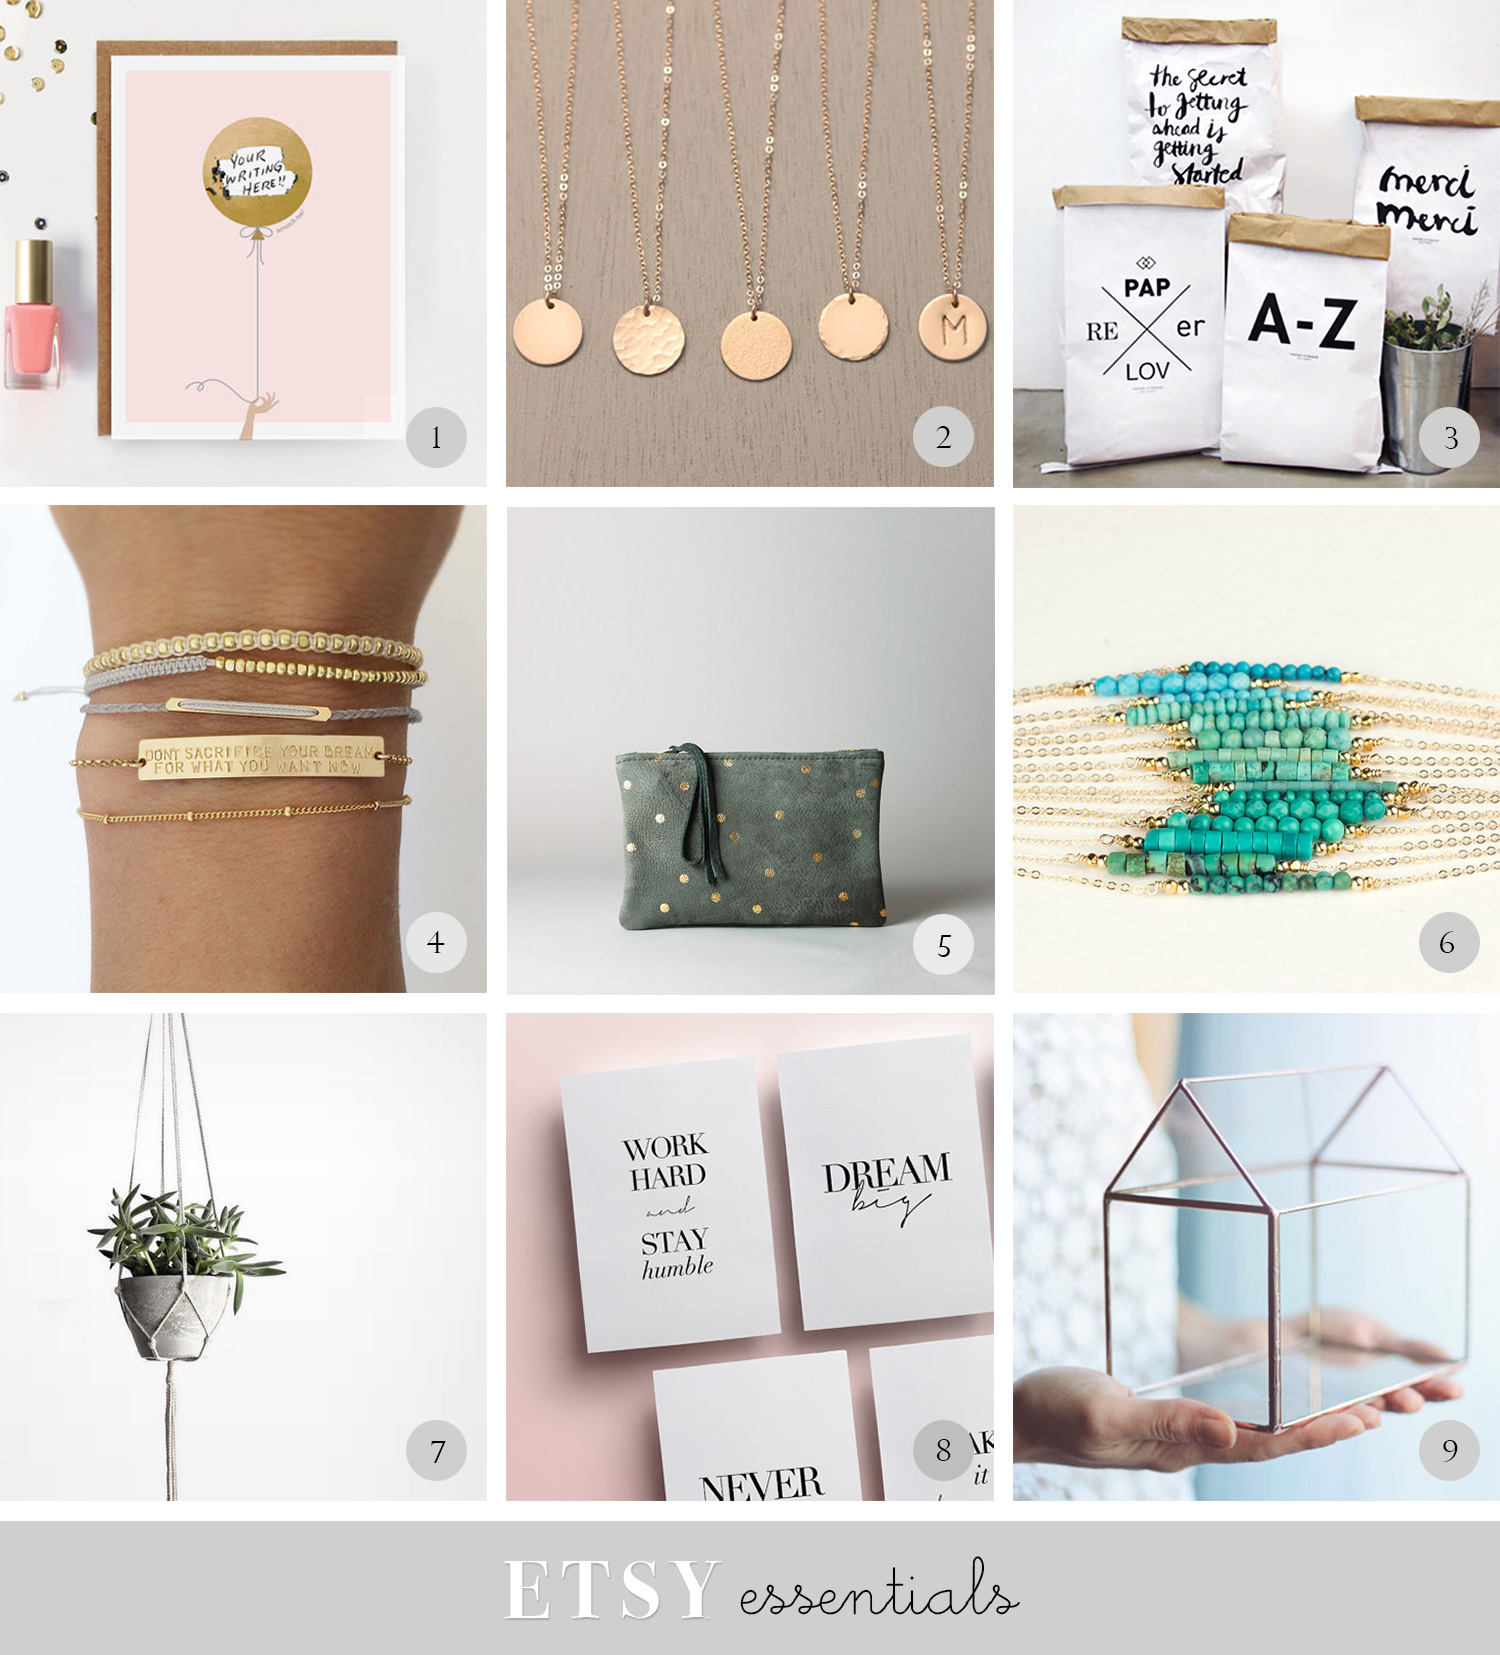 etsy-essentials@2x